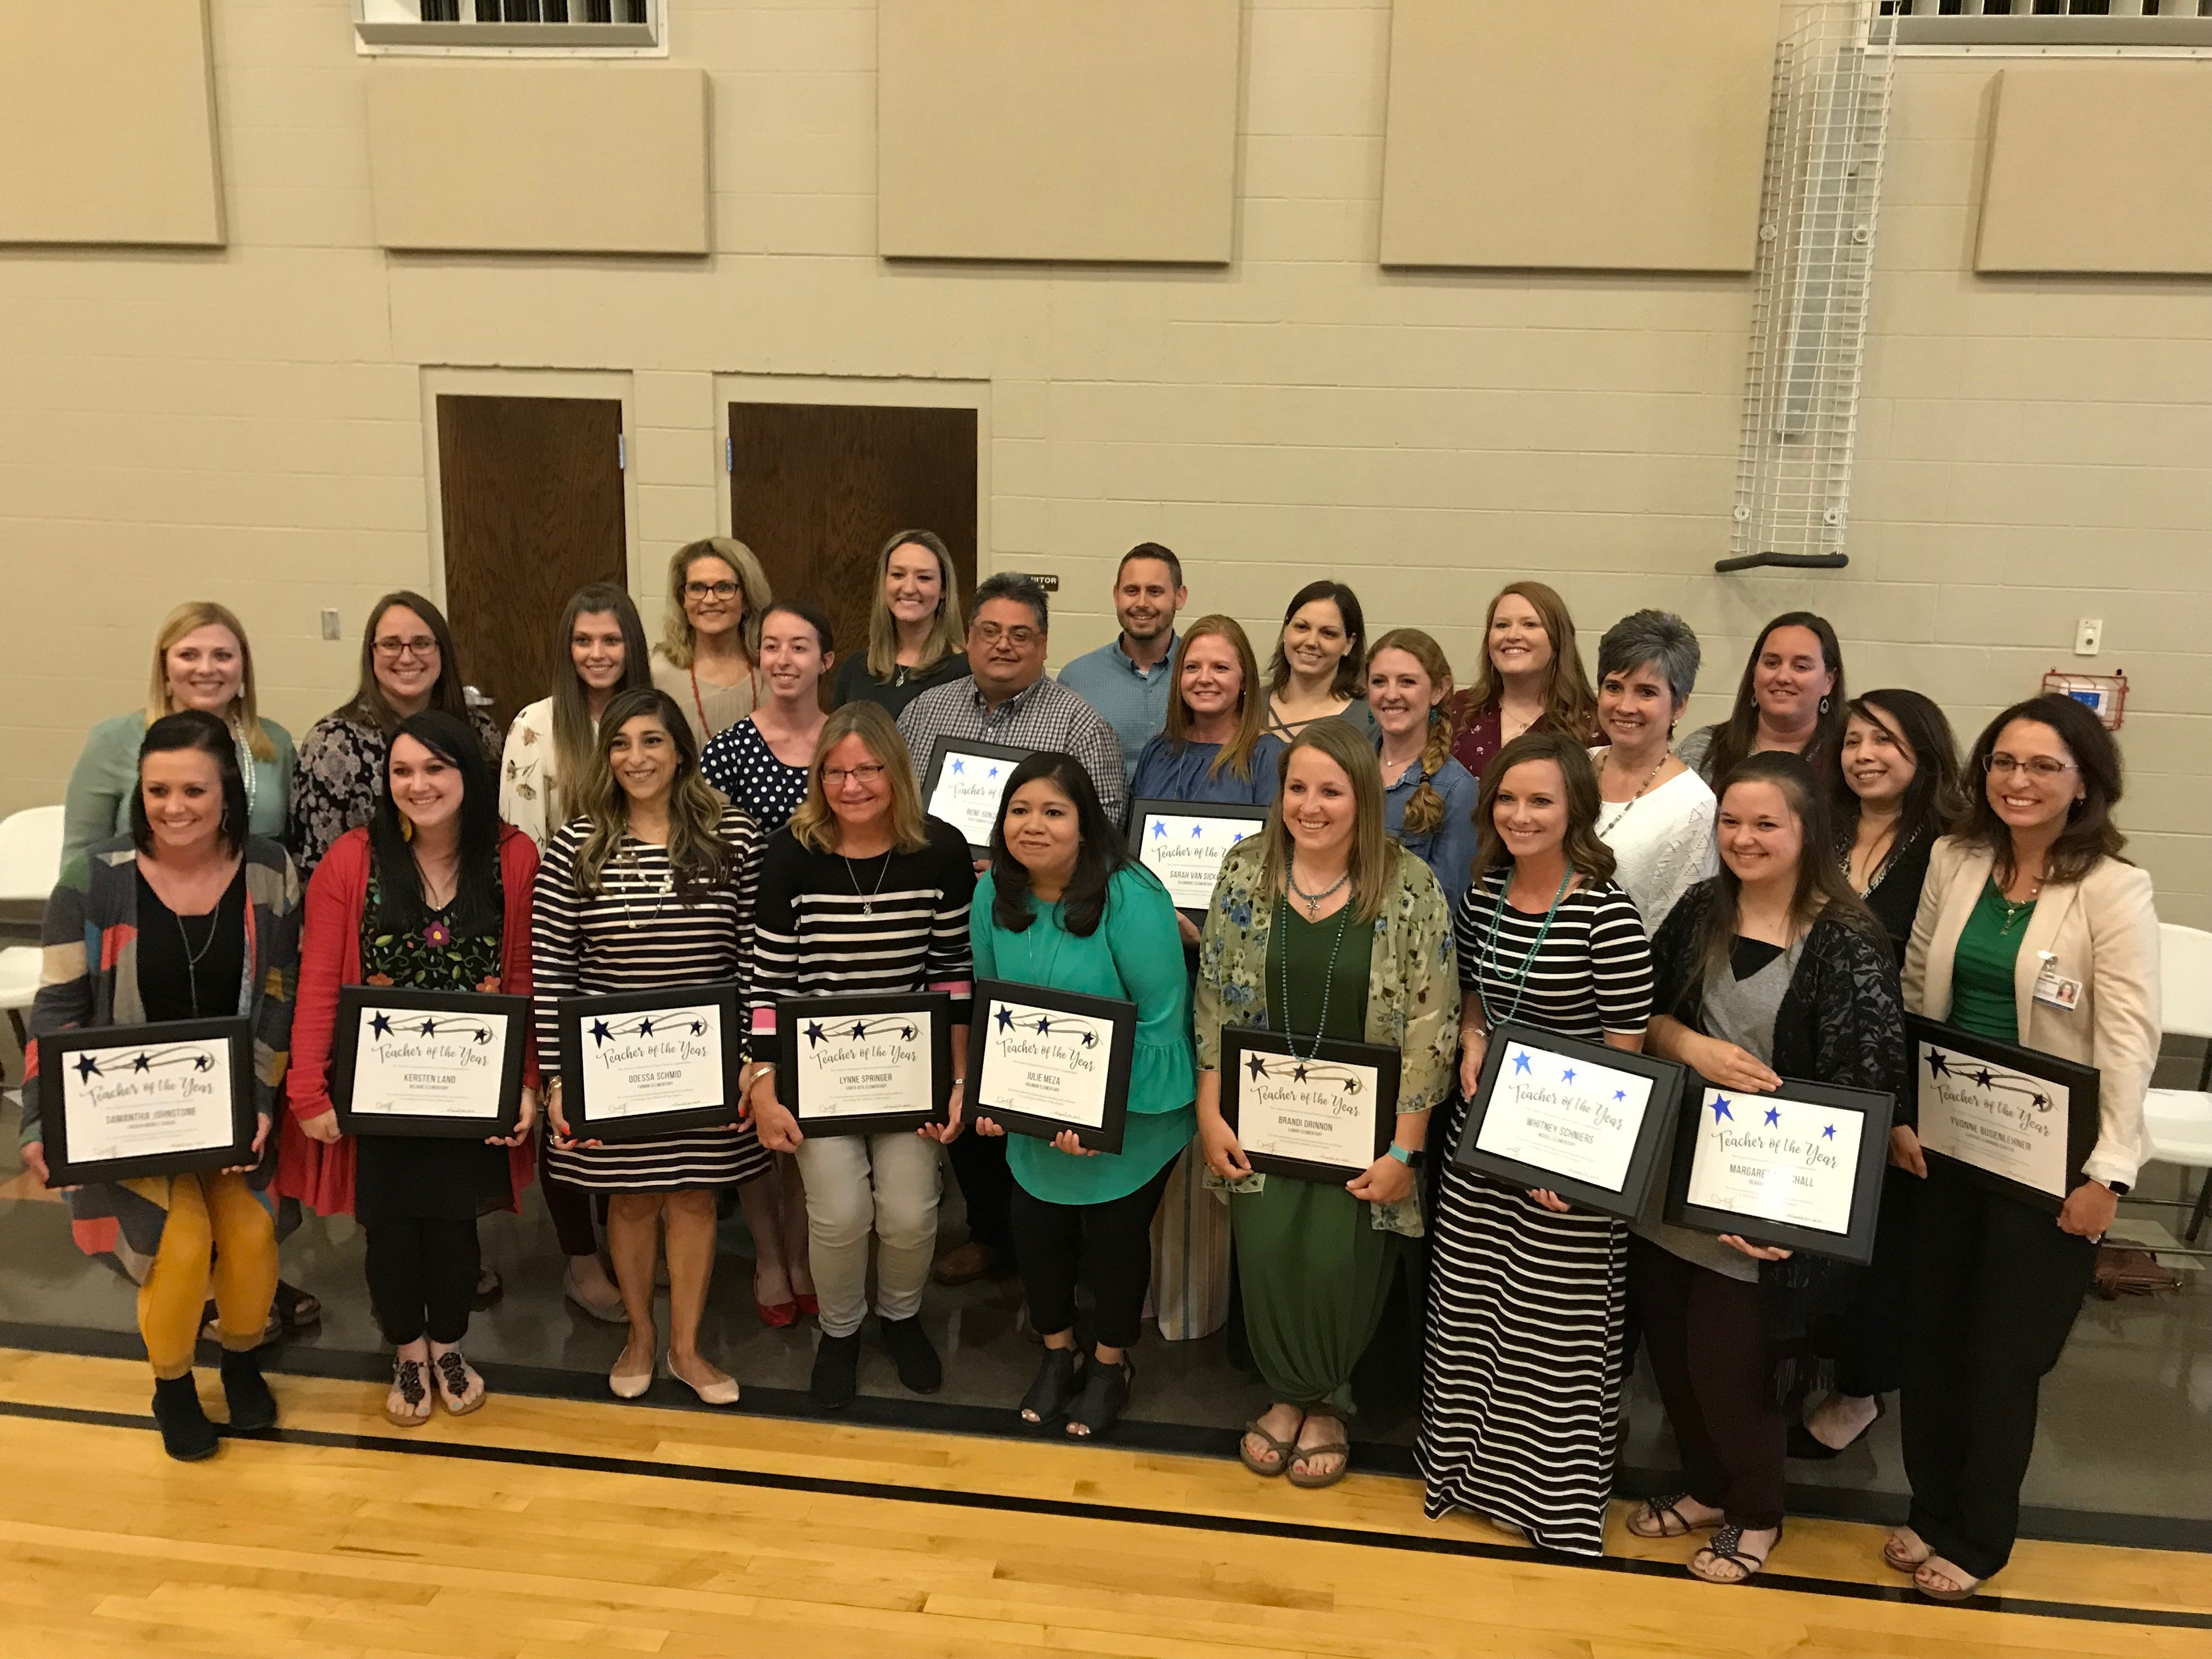 San Angelo ISD teachers were recognized for their outstanding leadership and excellence at the 2019 Teacher of the Year Ceremony.